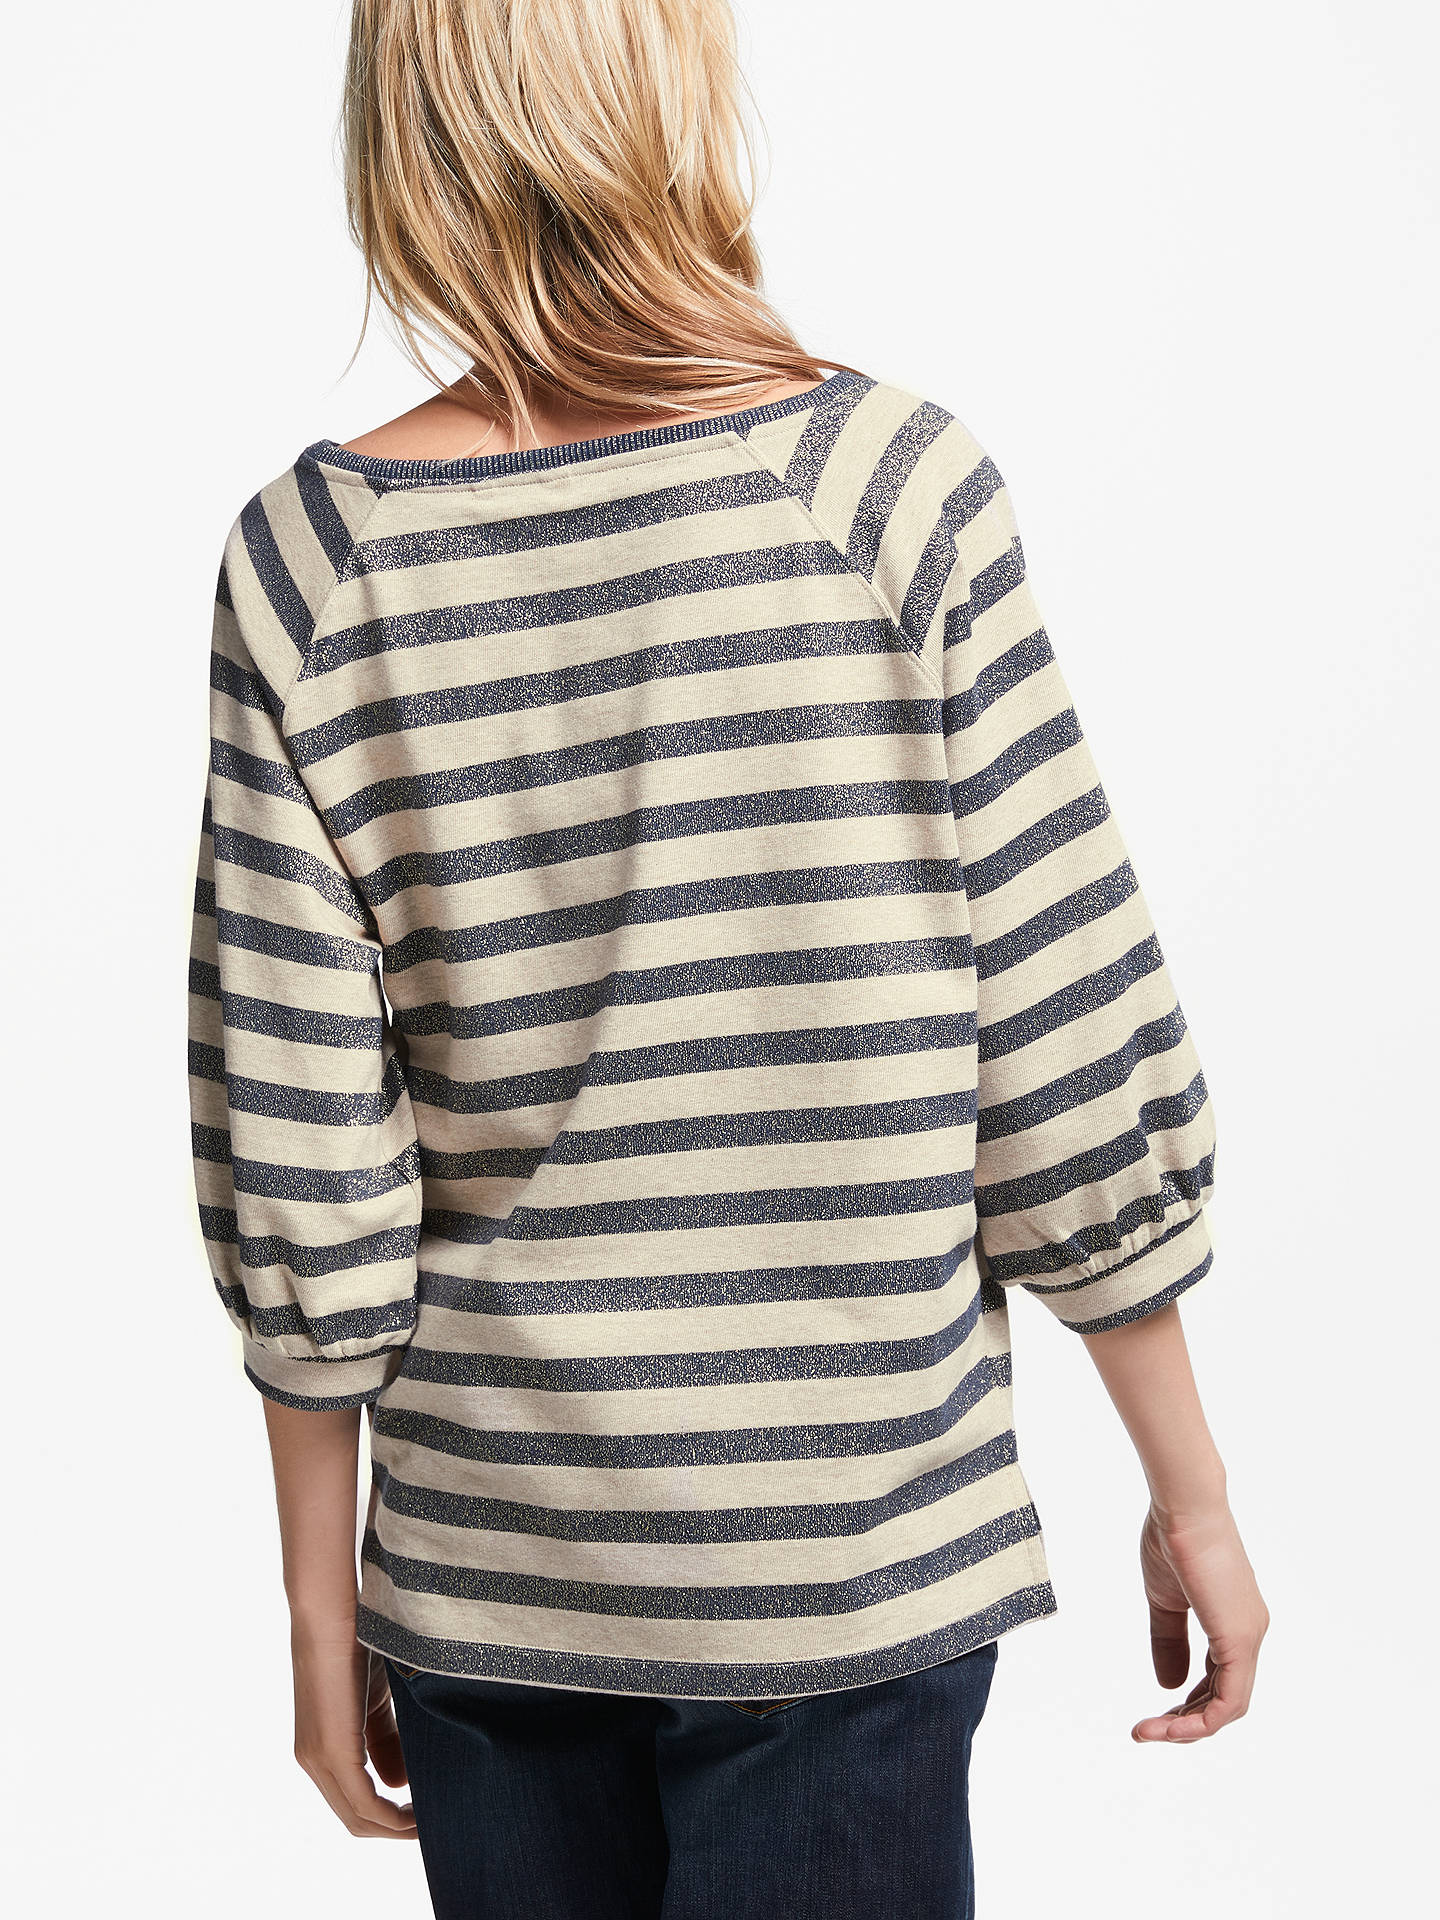 BuyAND/OR Lana Metallic Stripe Sweatshirt, Black/Ivory, S Online at johnlewis.com